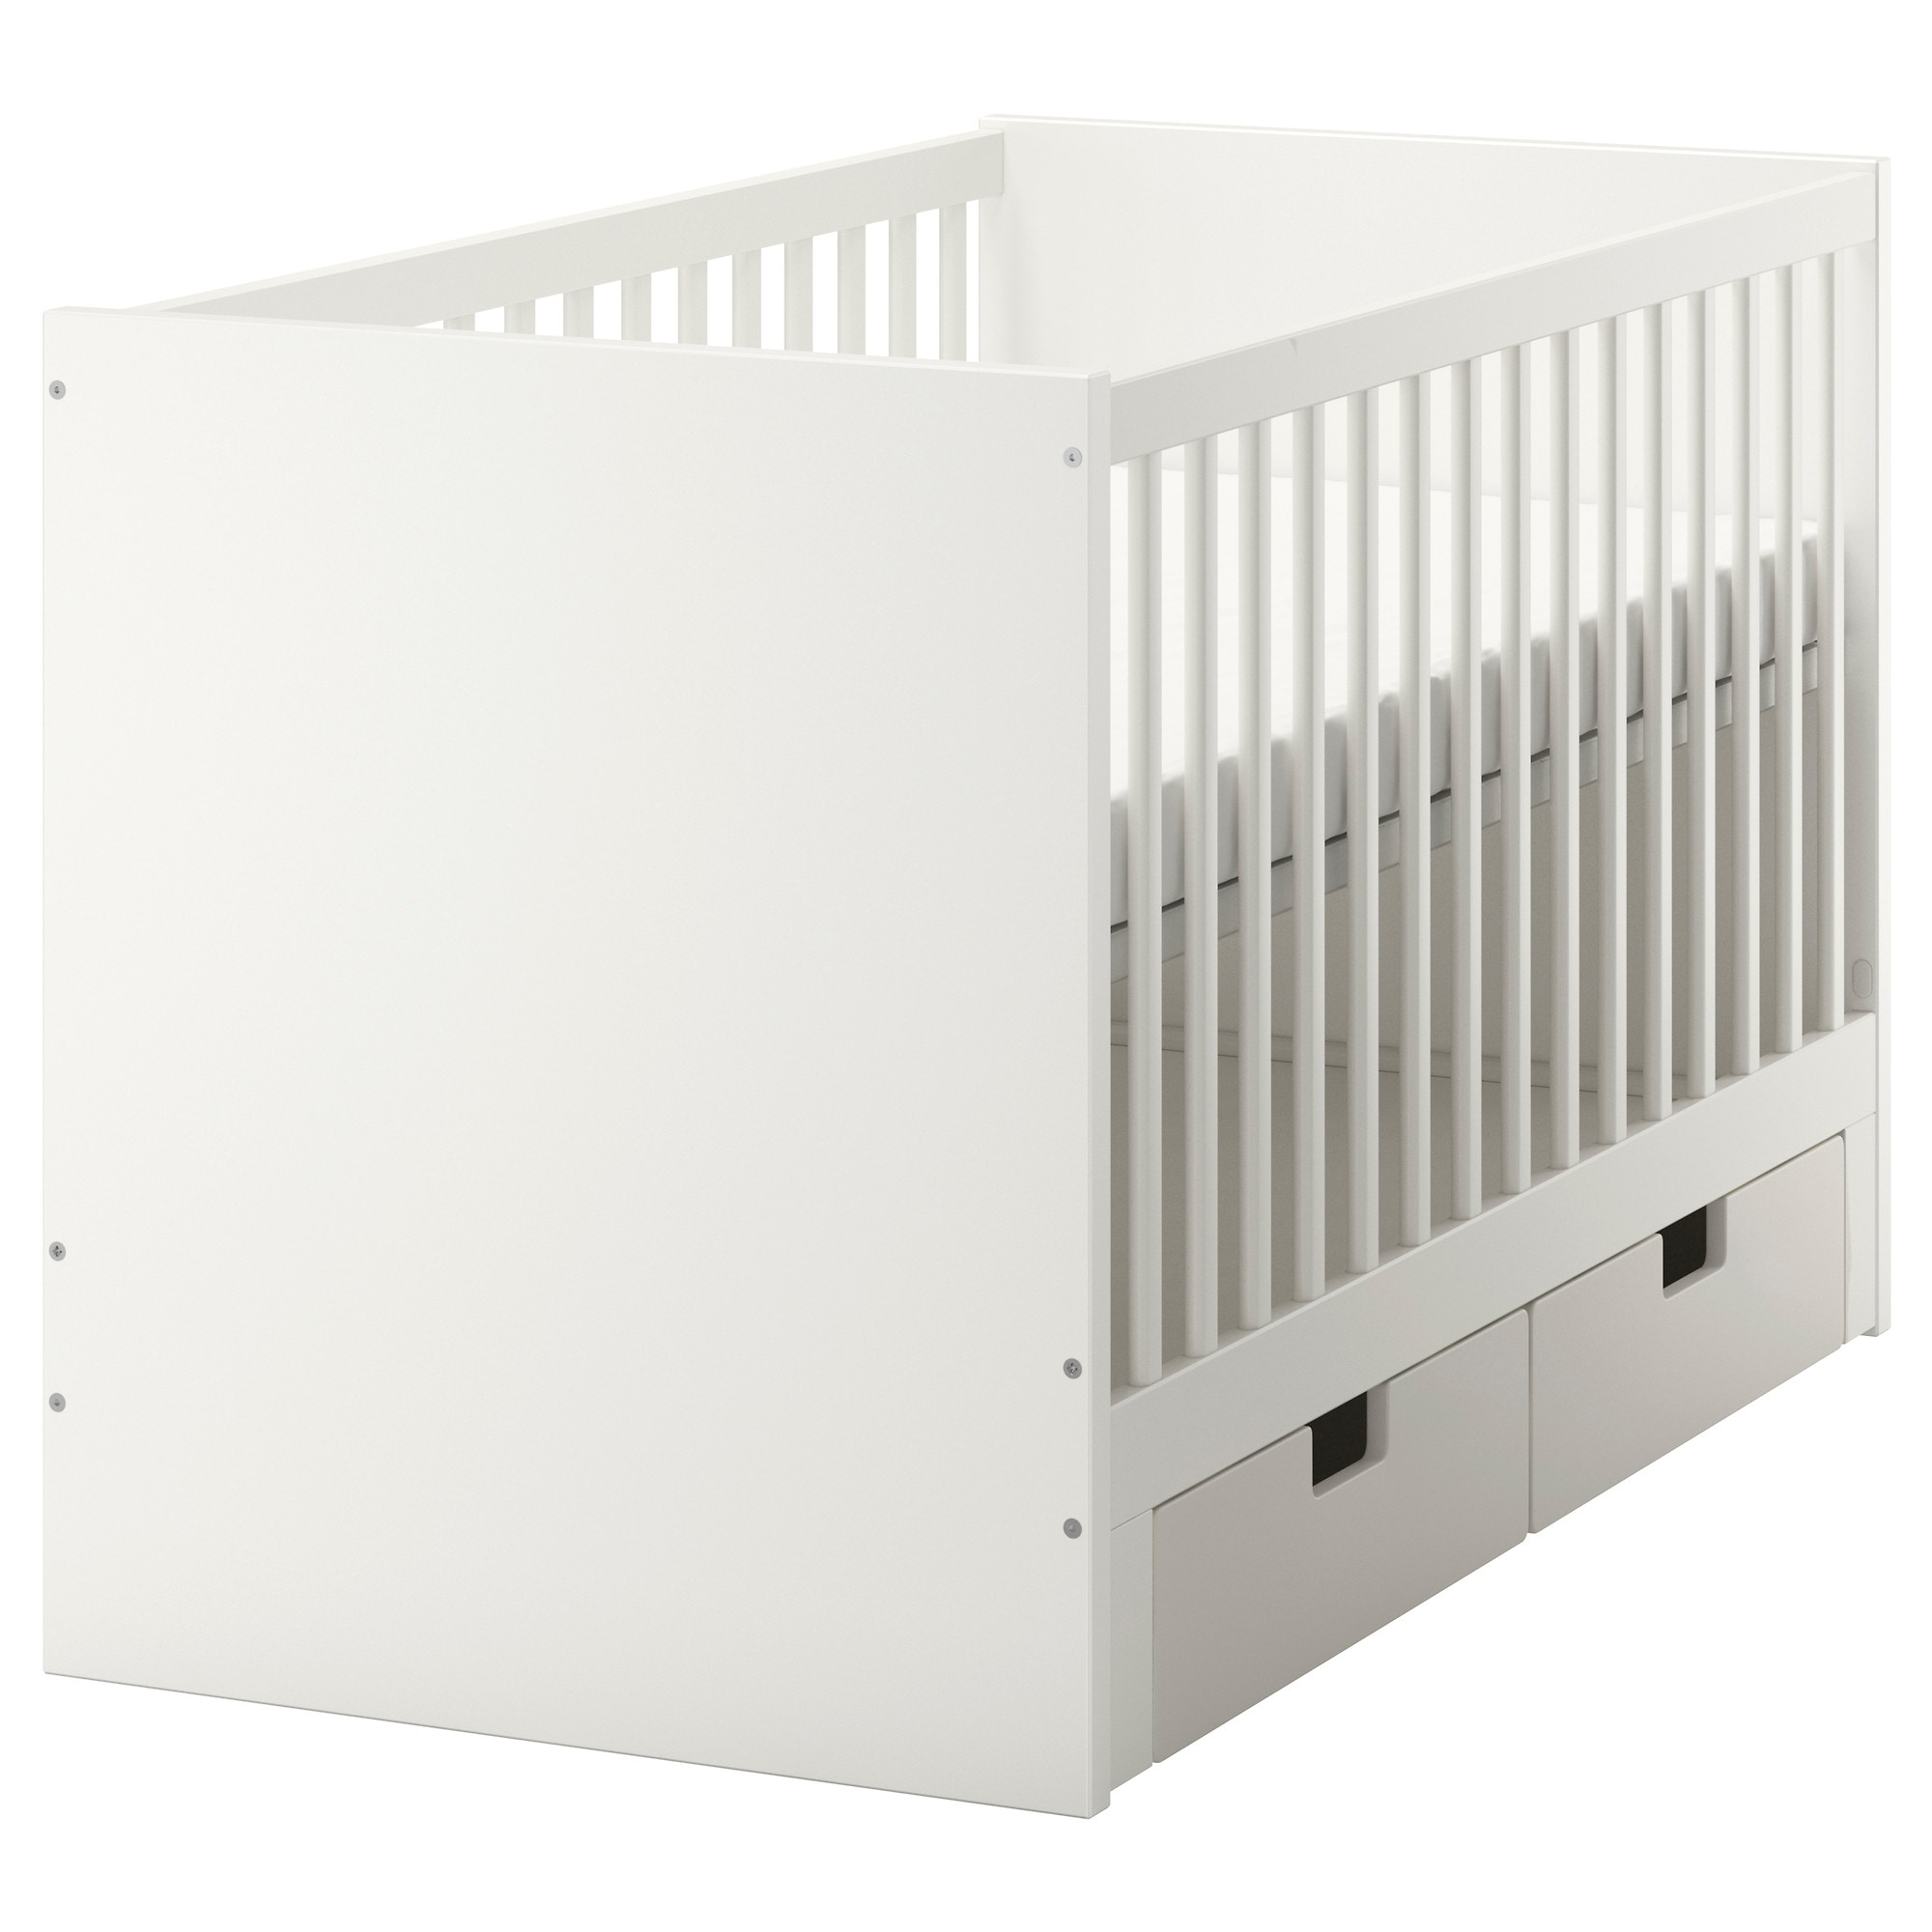 crib tal mattress rage wood off size underneath adelyn convertible future cot bed dark deals grey bedside nursery wheels the sold and of oak baby sets covers gray drawers book full rustic relax white with cribs brown ddler modern ikea good